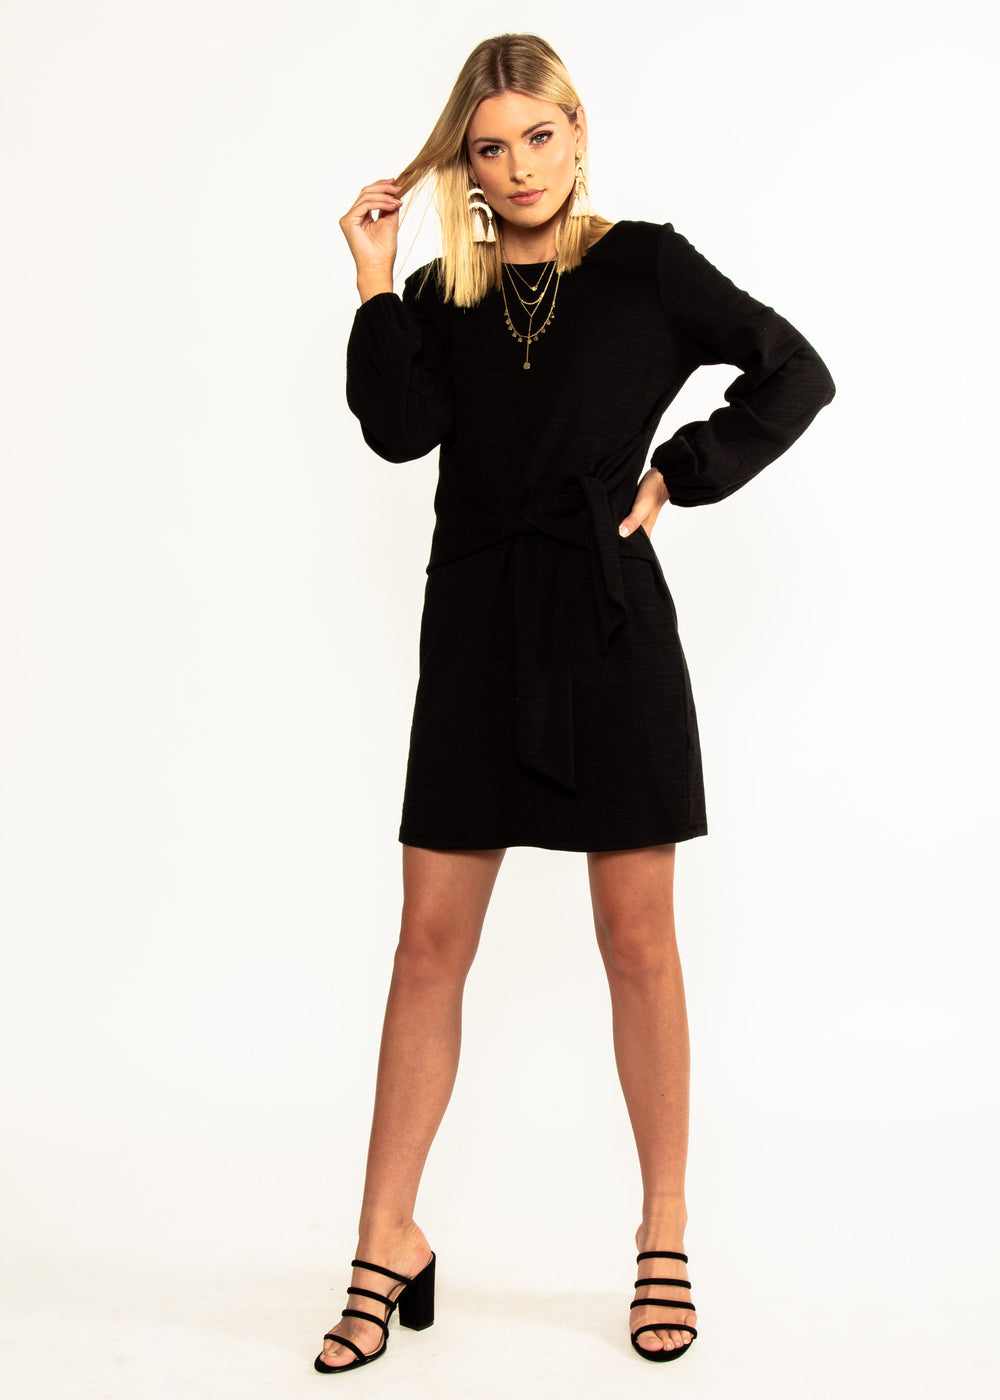 Jessa Tie Knit Dress - Black